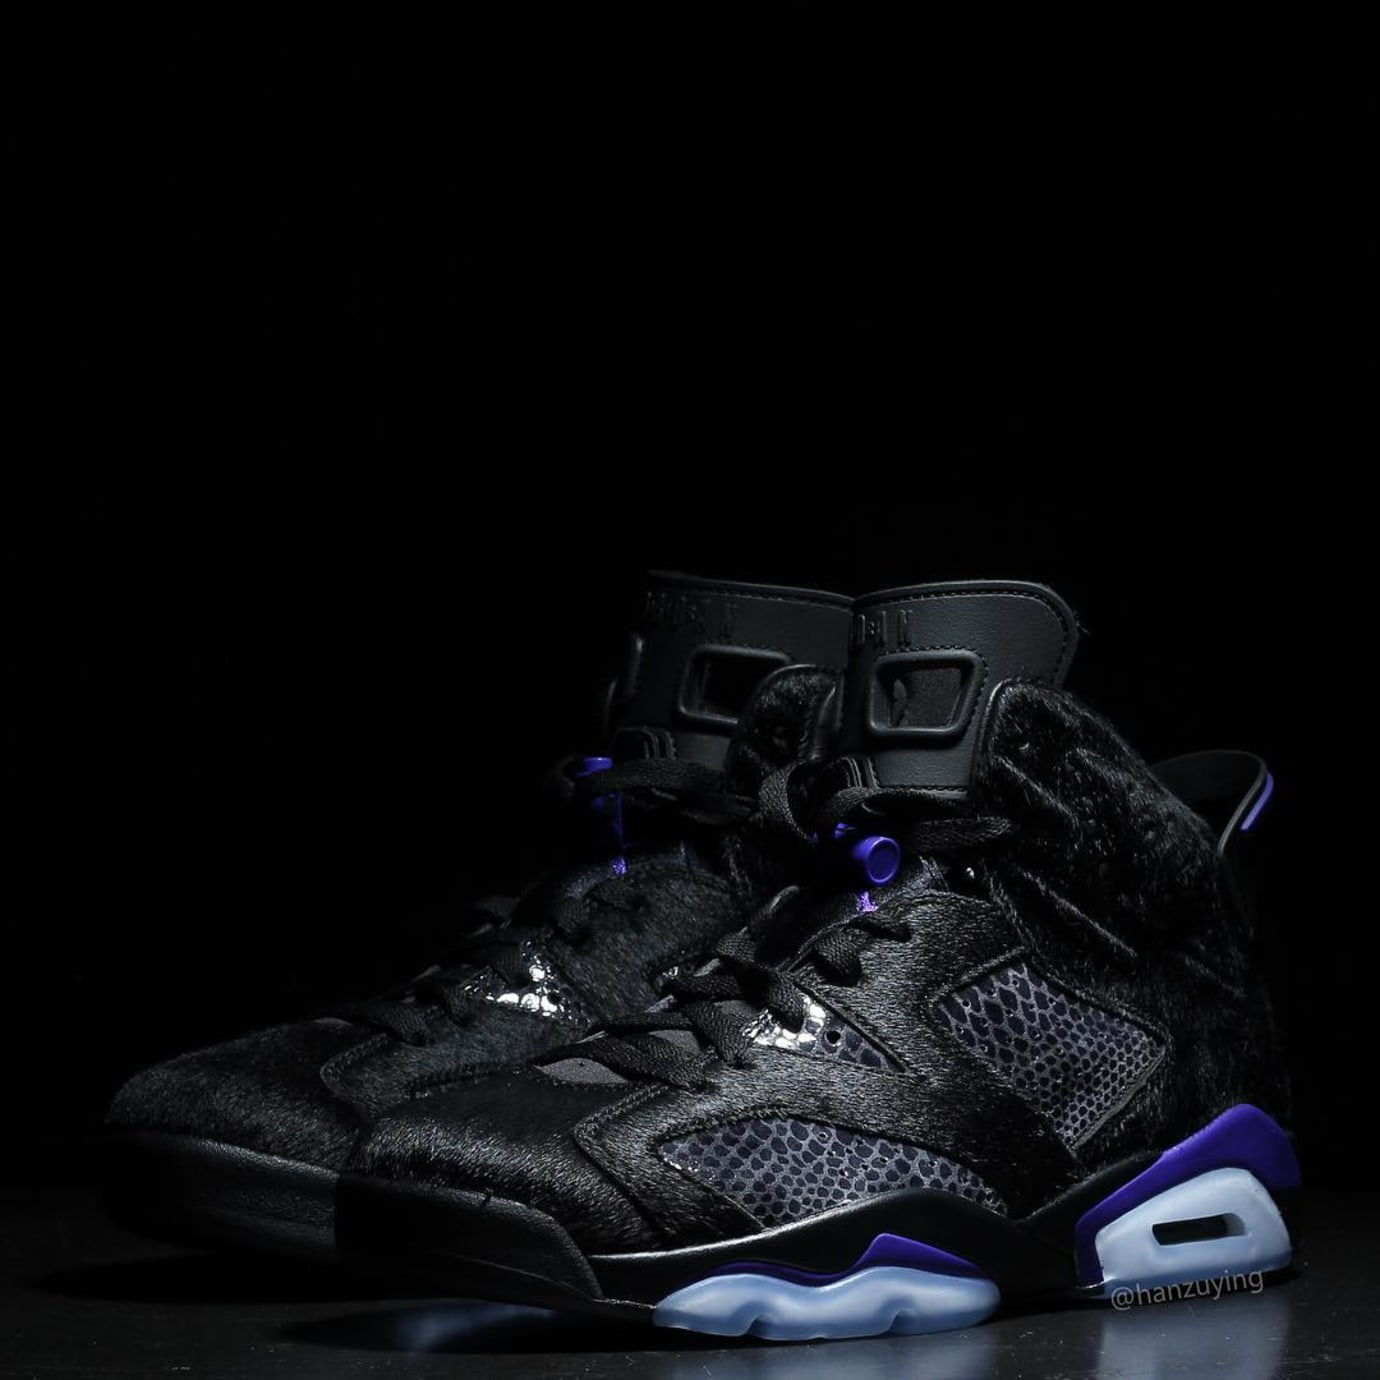 009f22fc50d Image via hanzuying · Air Jordan 6 VI Cow Fur Snakeskin Black Purple  Release Date AR2257-005 Pair